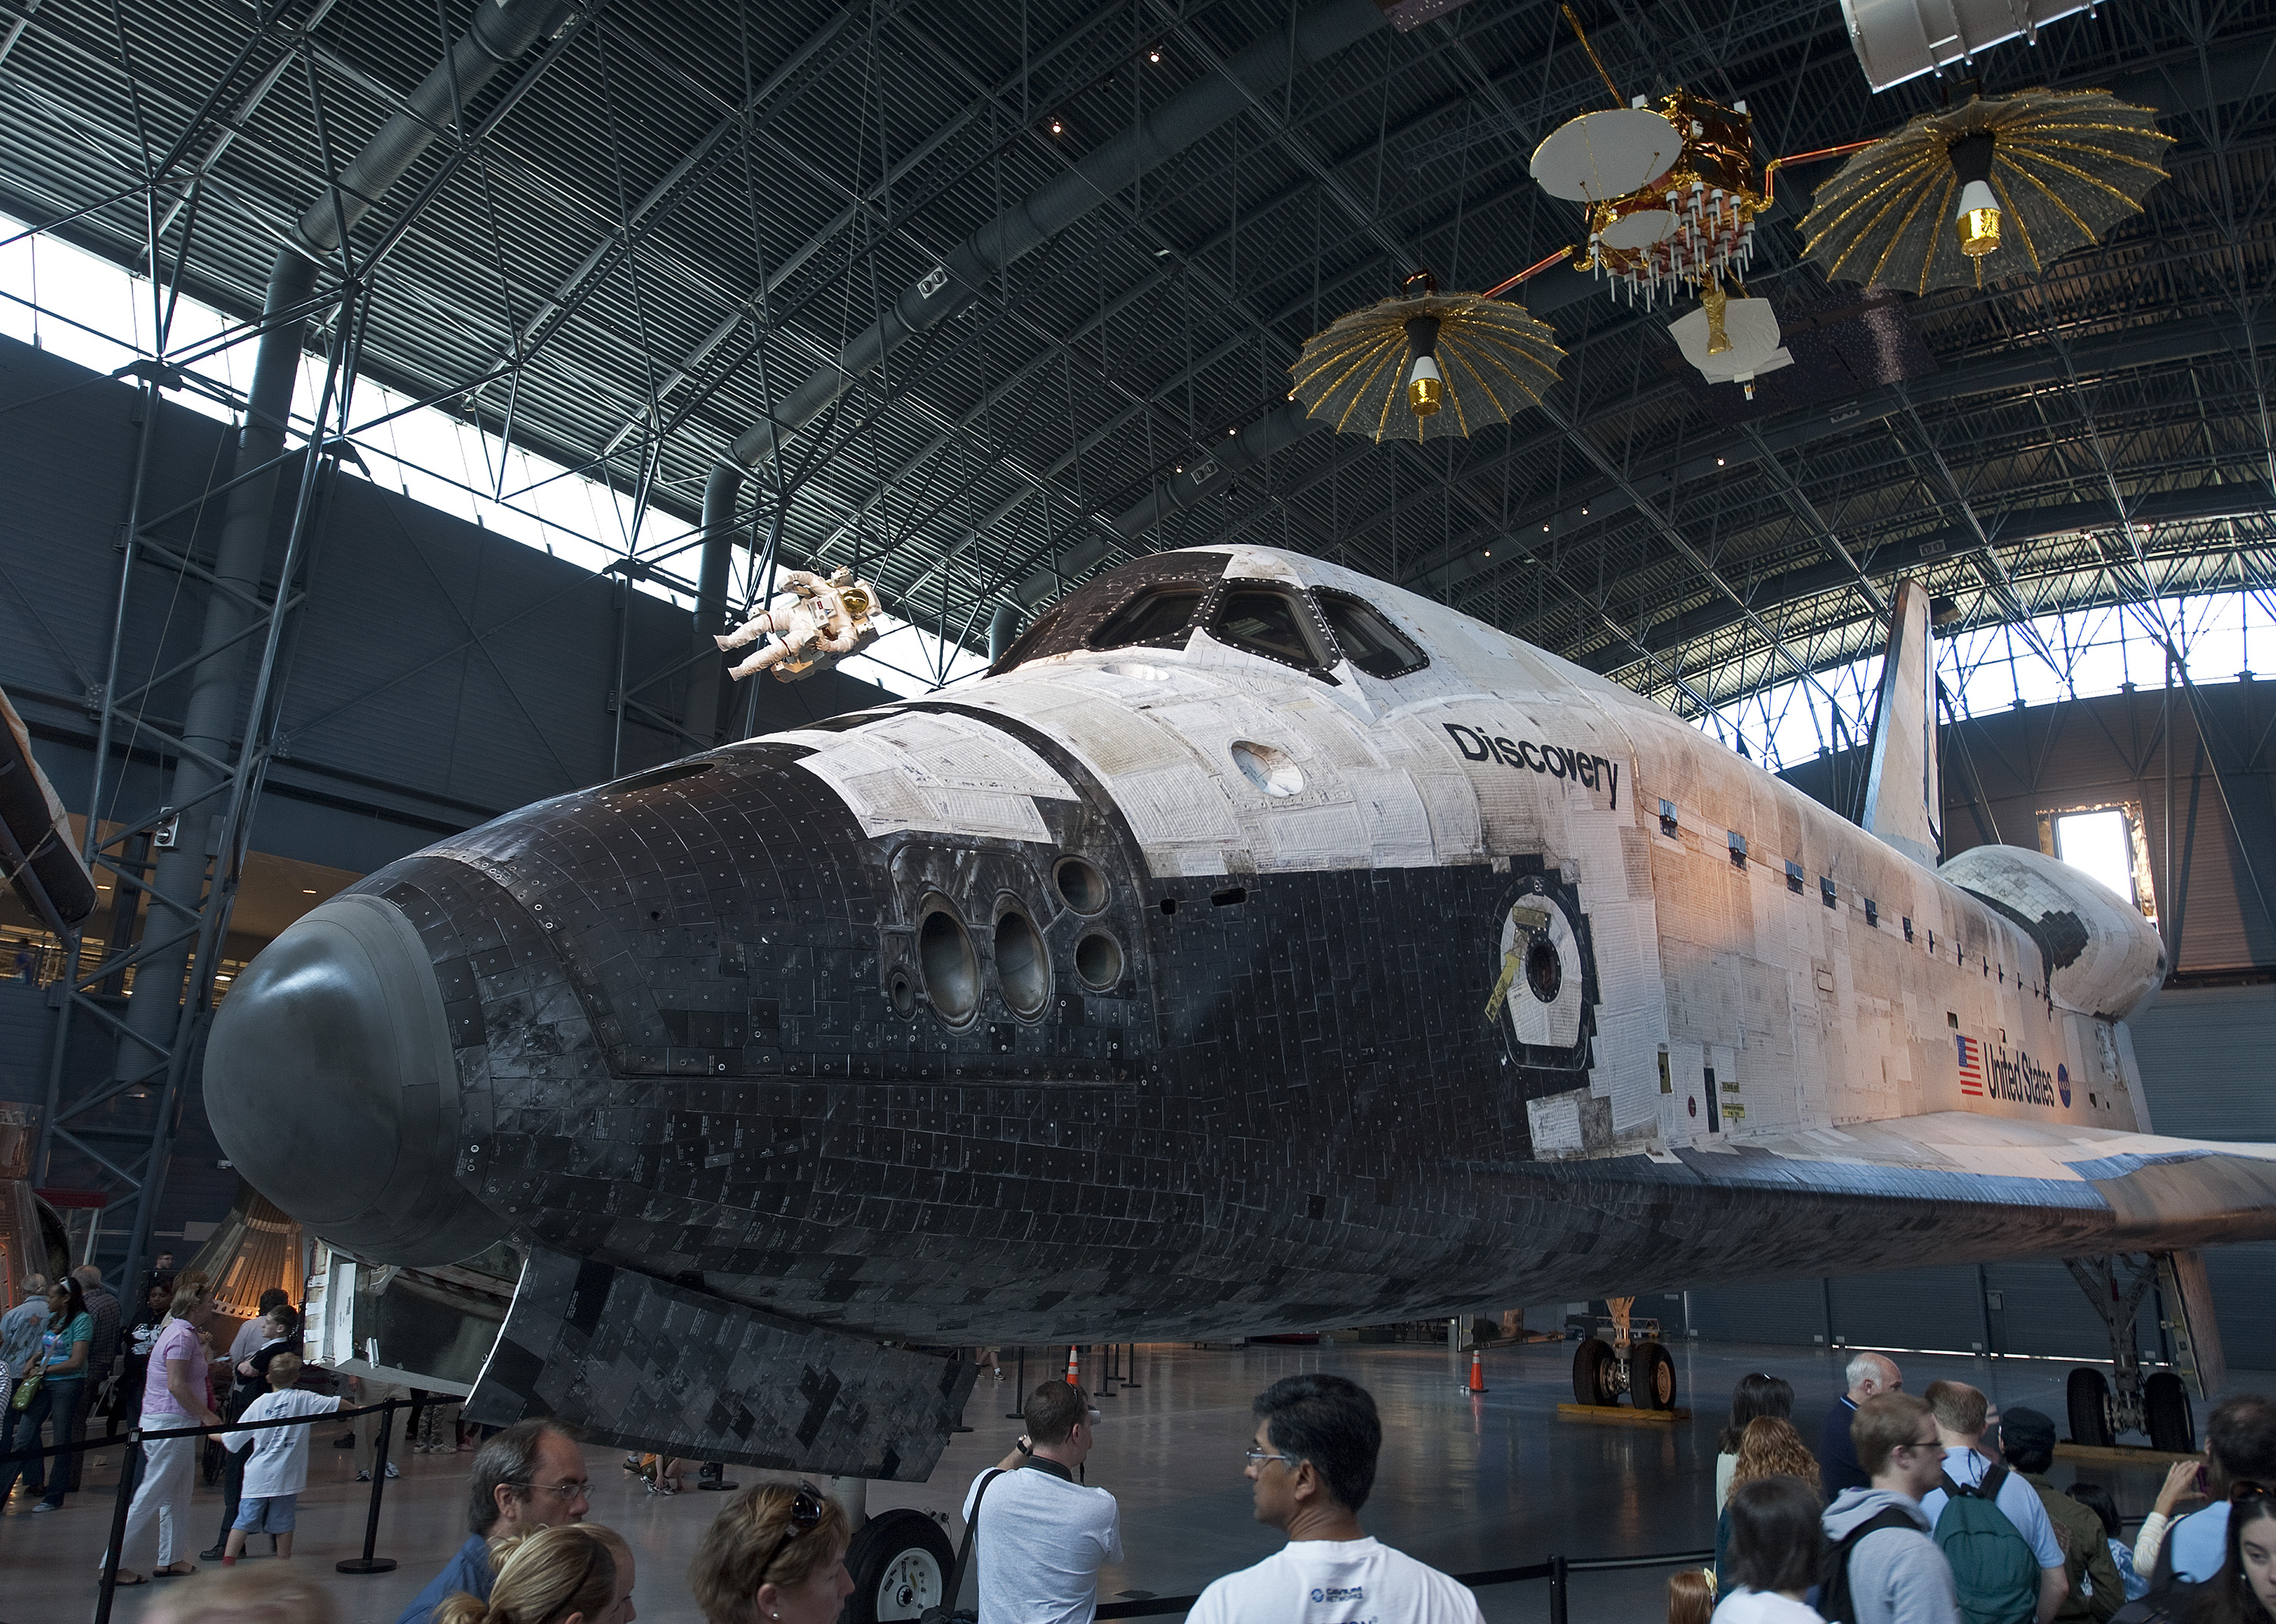 space shuttle discovery smithsonian - photo #1